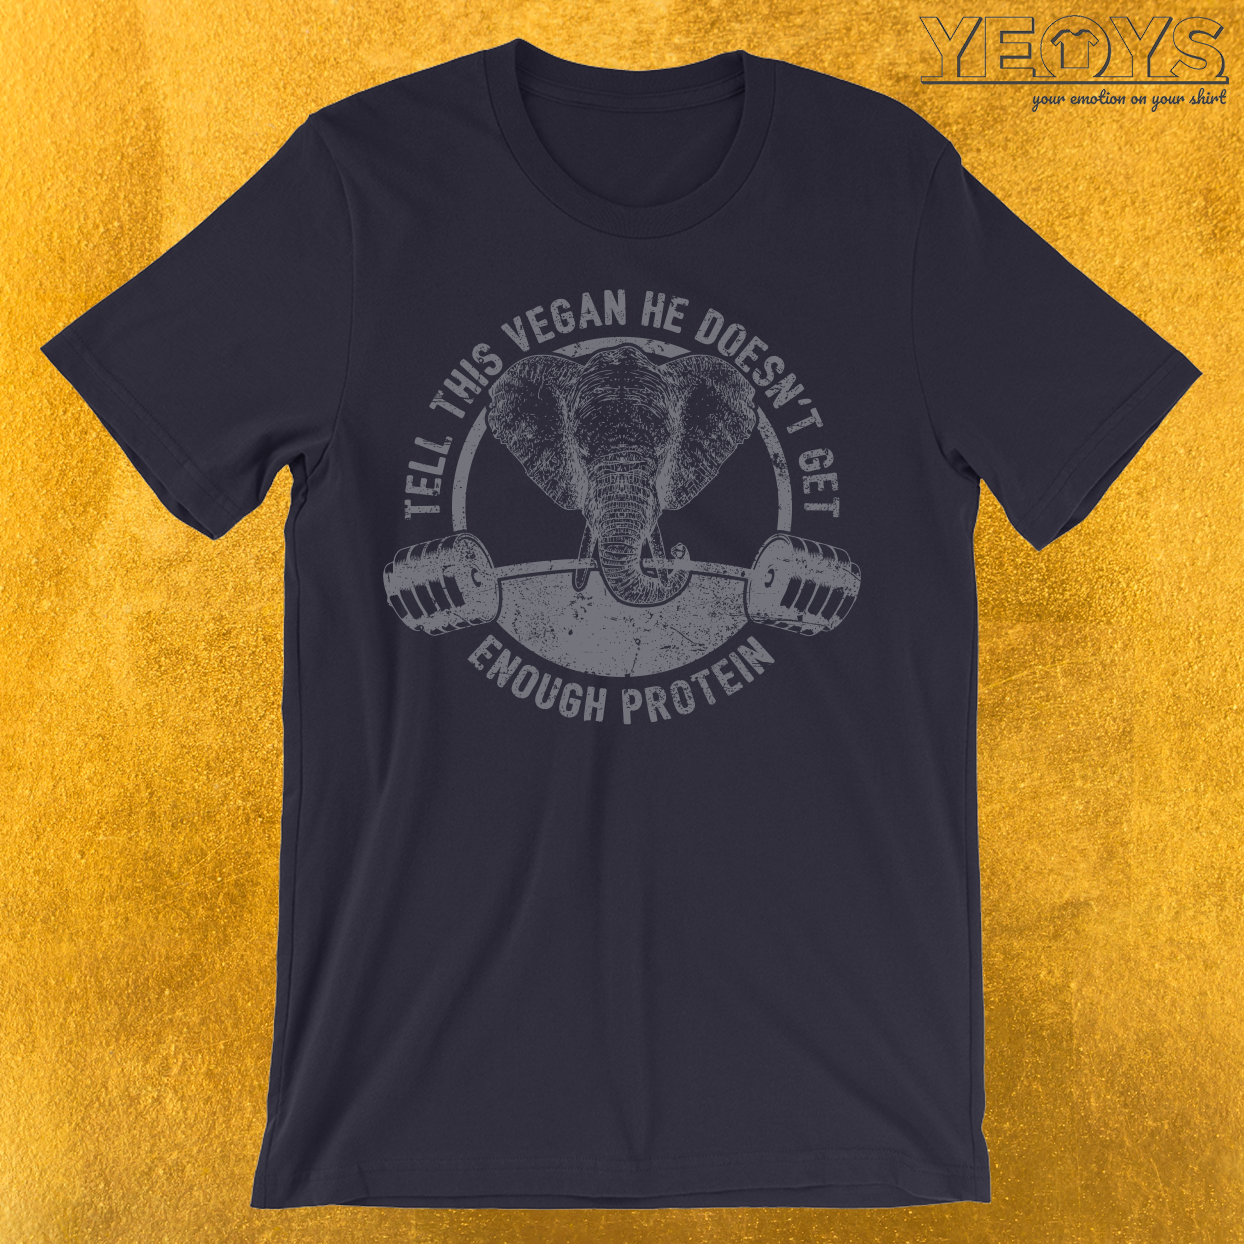 Tell This Vegan About Protein Elephant T-Shirt